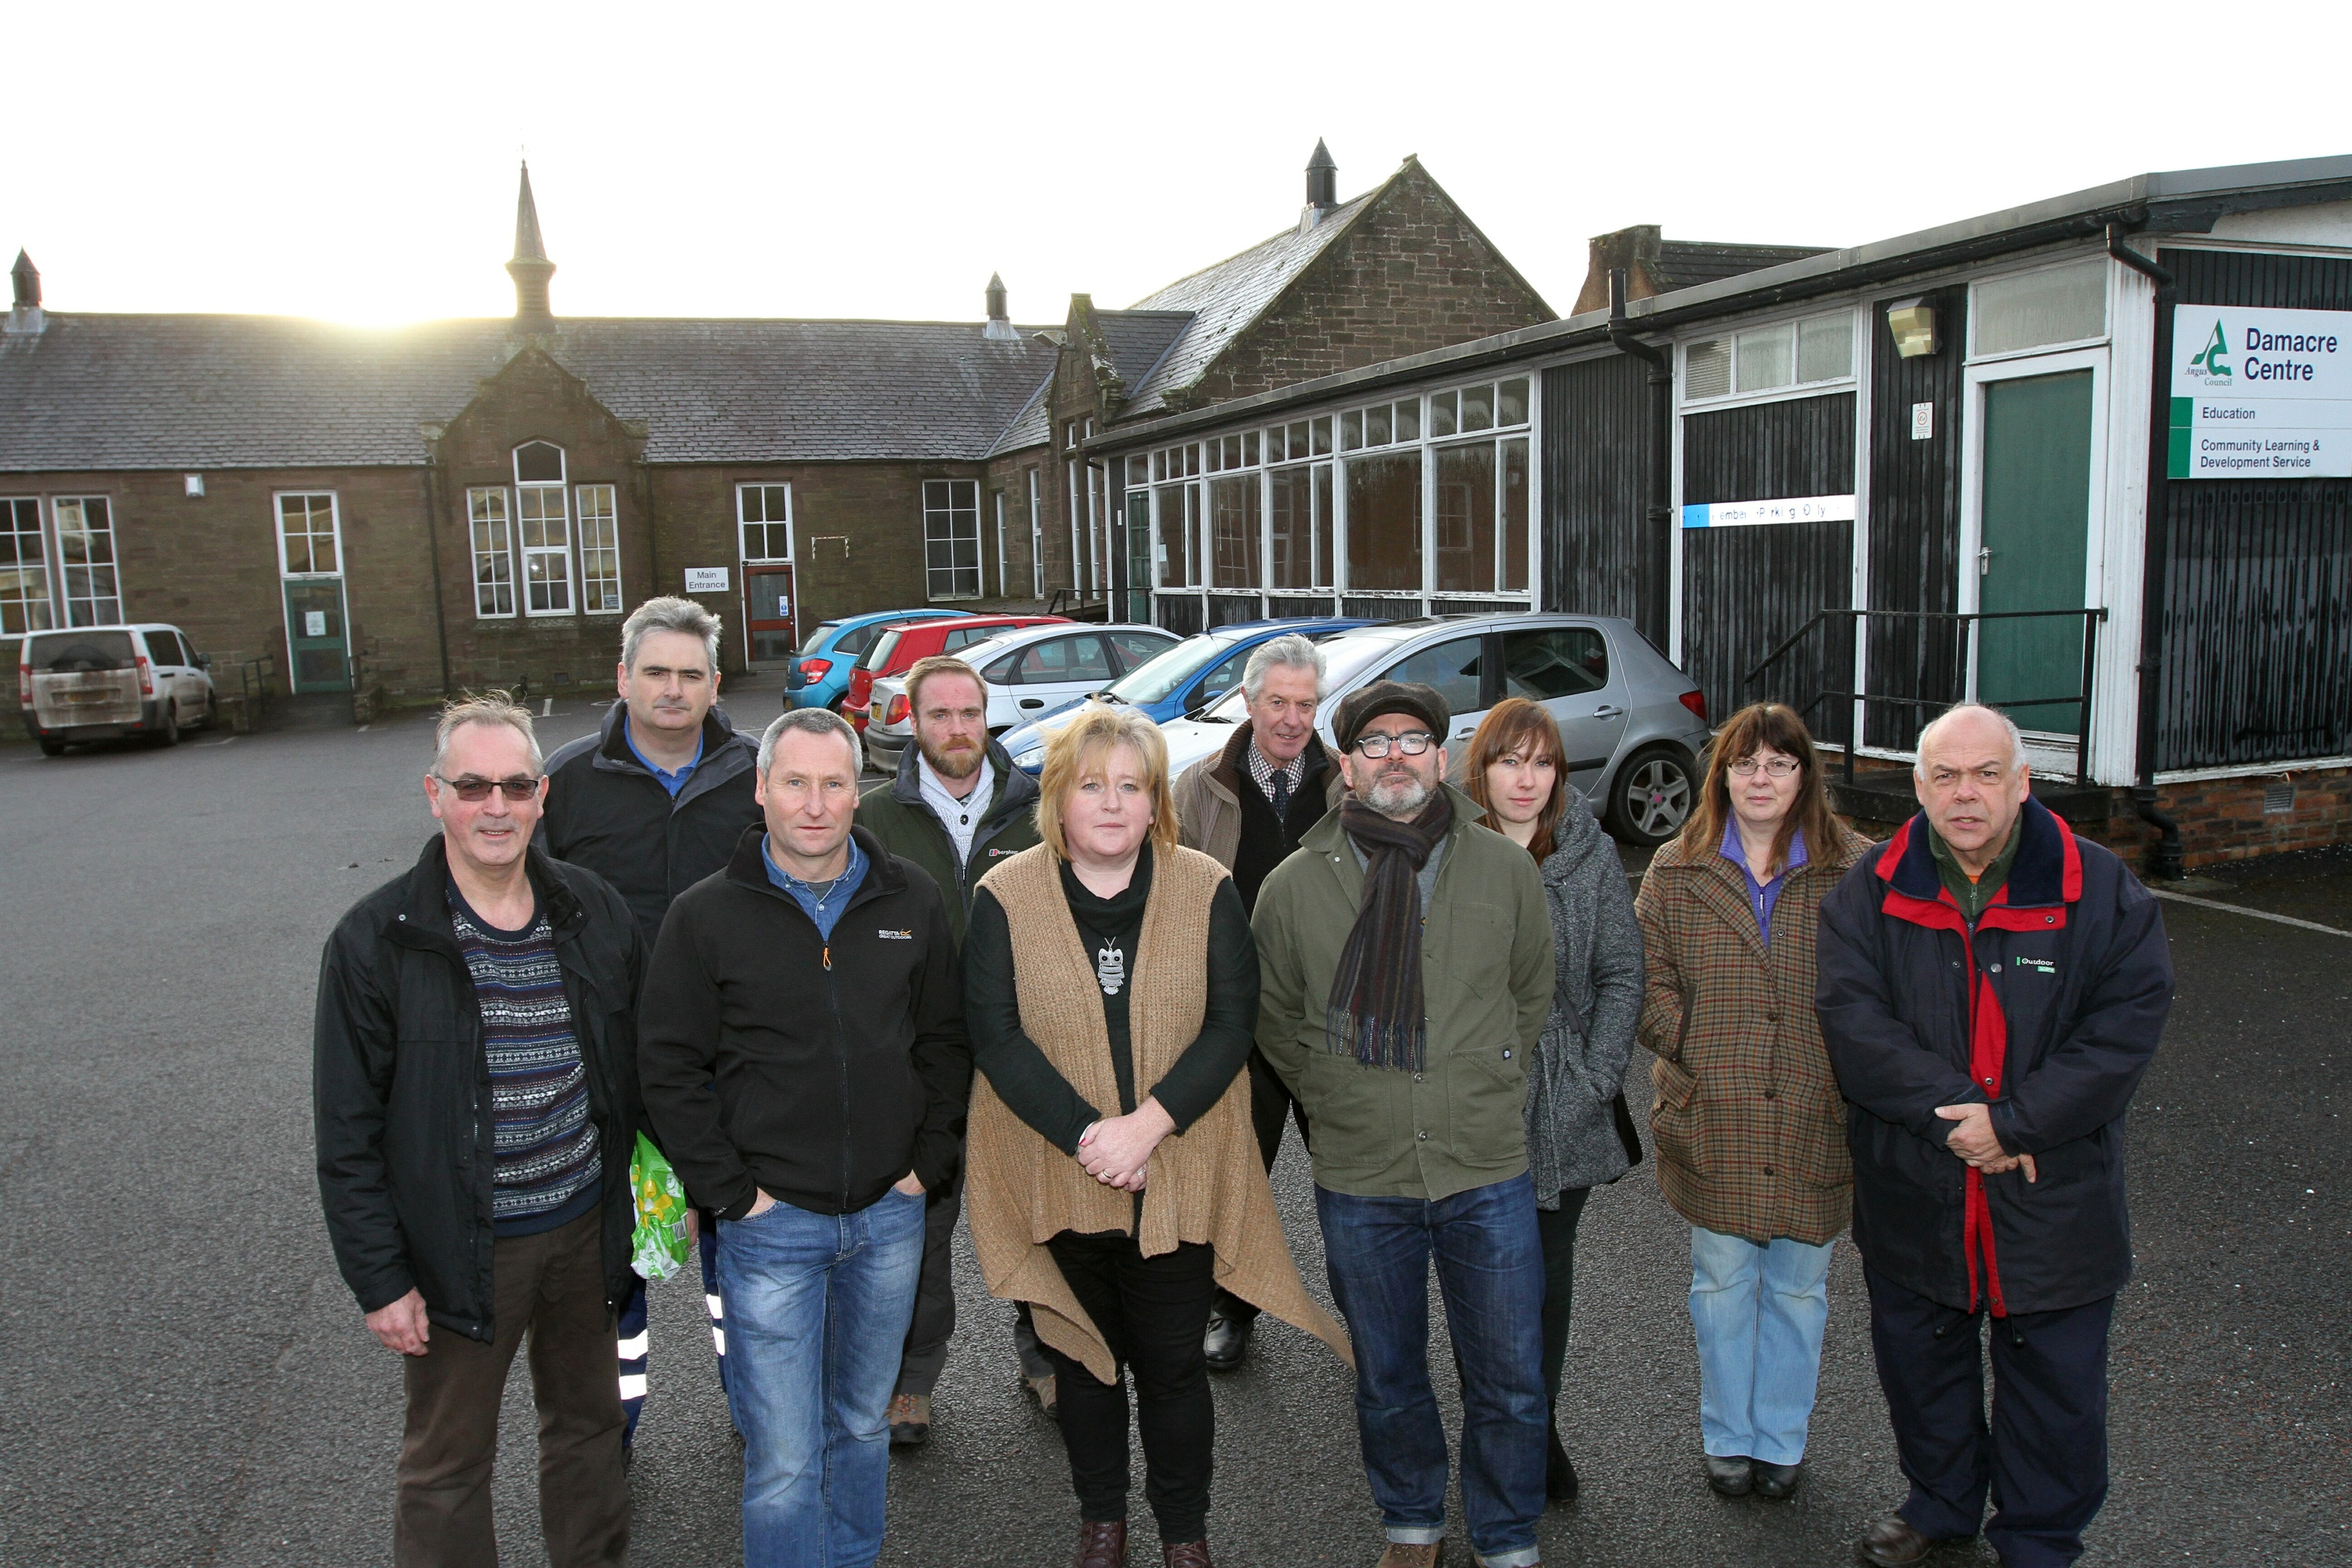 Brechin residents are angry at council plans to demolish the former Damacre Centre